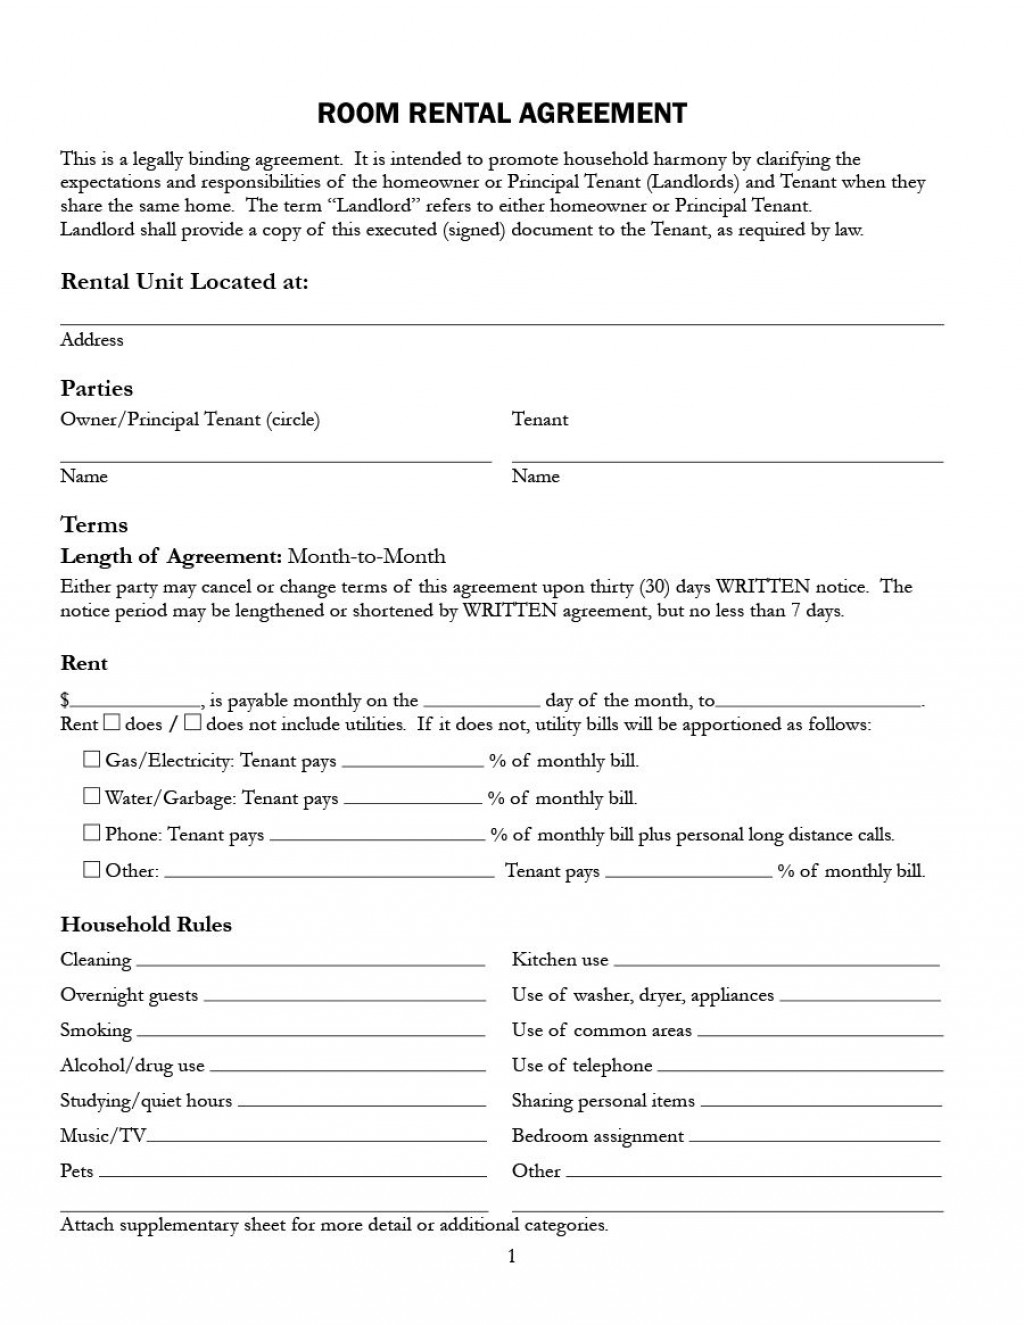 009 Archaicawful Room Rental Agreement Template Alberta Example Large